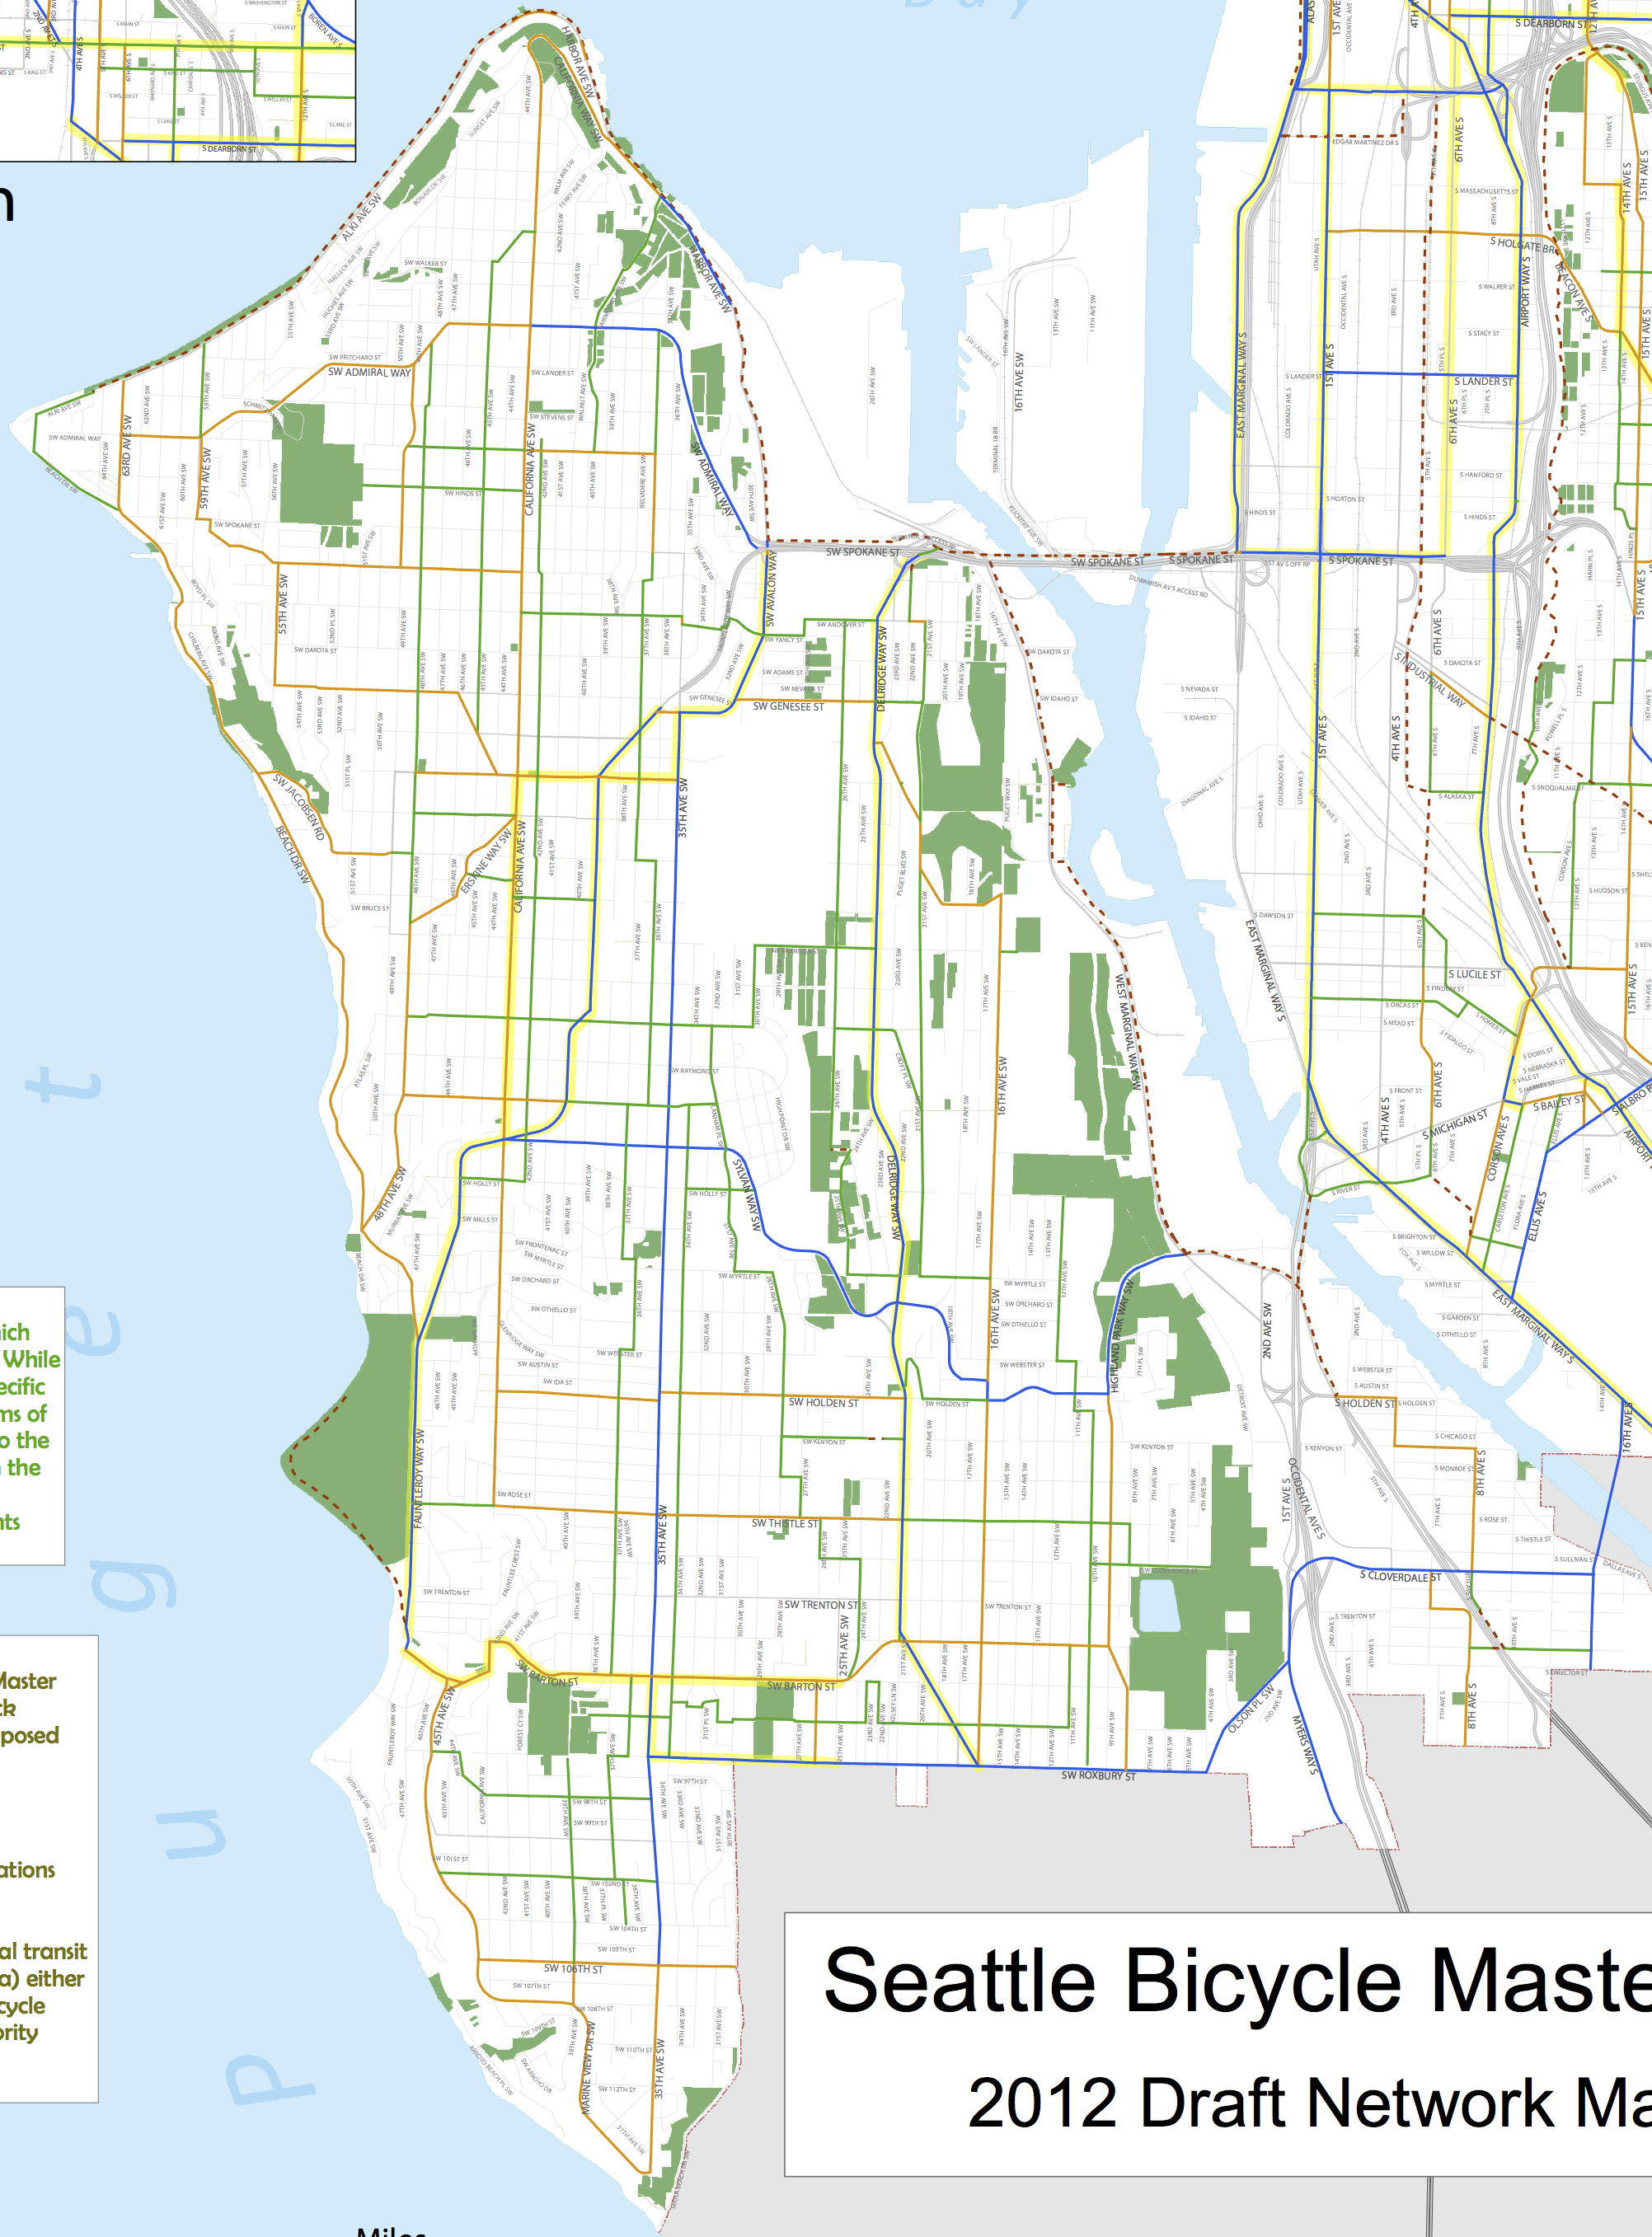 Bike Master Plan West Seattle Sodo and South Park Seattle Bike Blog